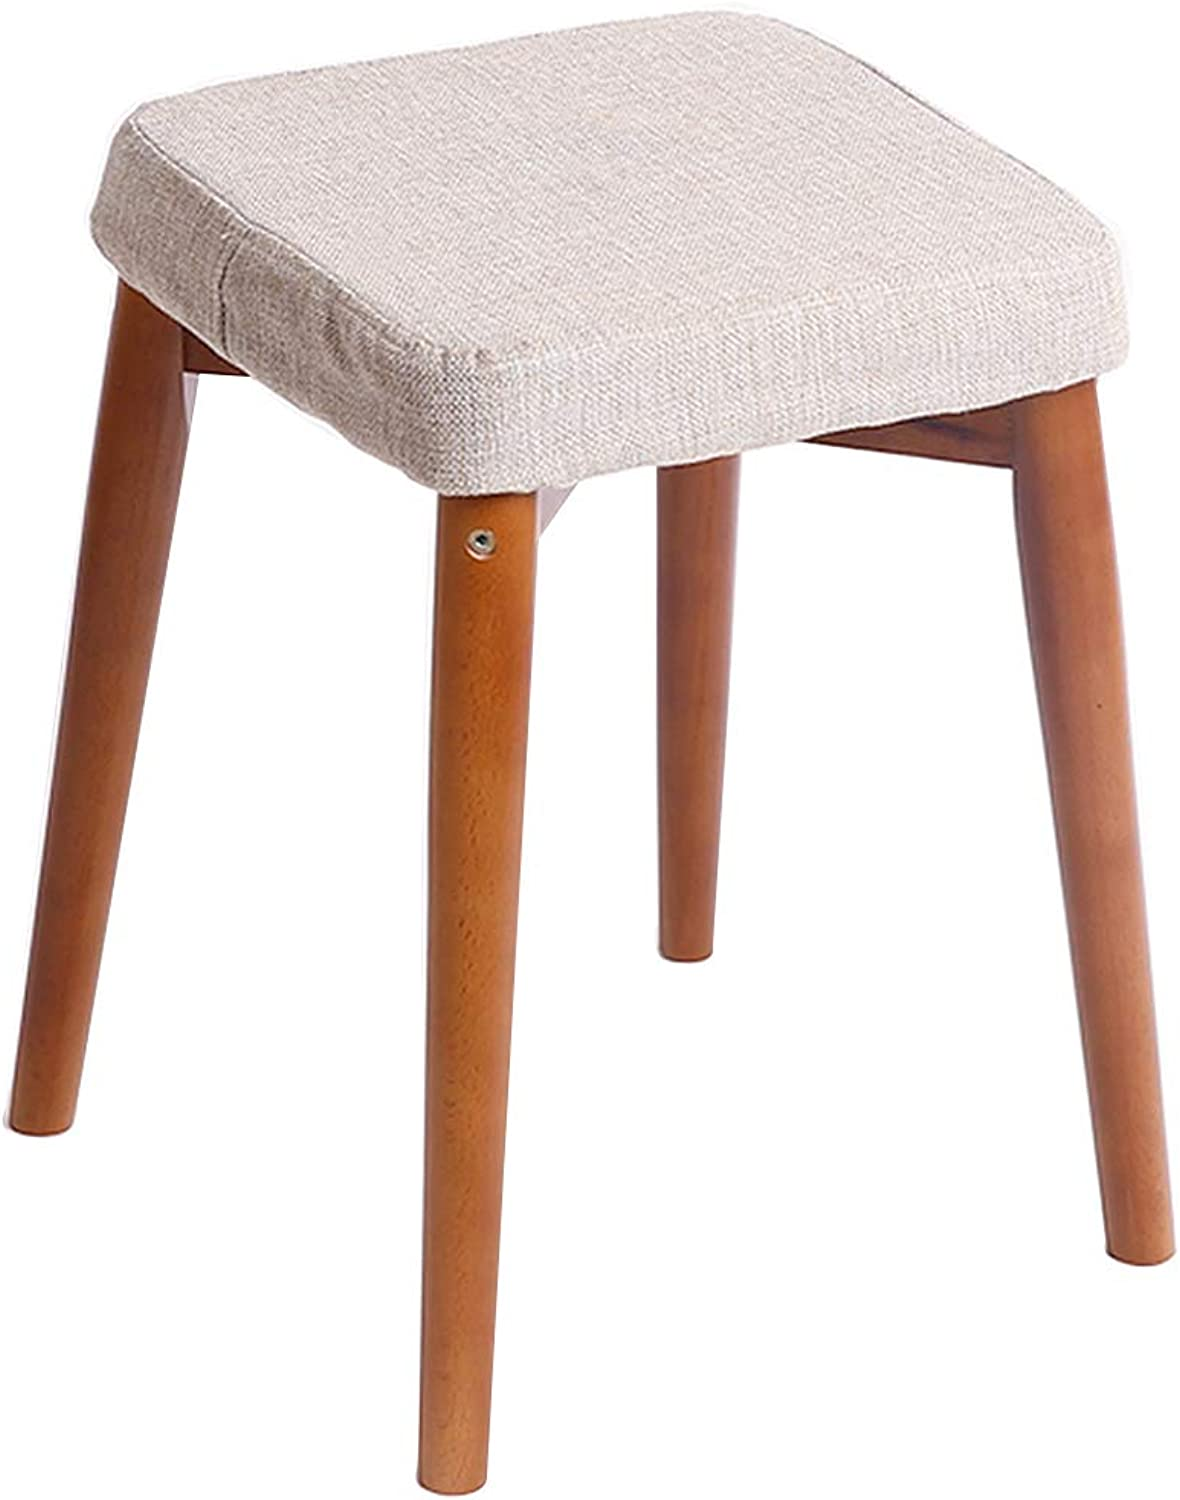 Household Dinning Stool,Vanity Stool,Anti-Slip Footstool,Suitable for All Kinds of Activities of Daily Living(32x32x46cm),B